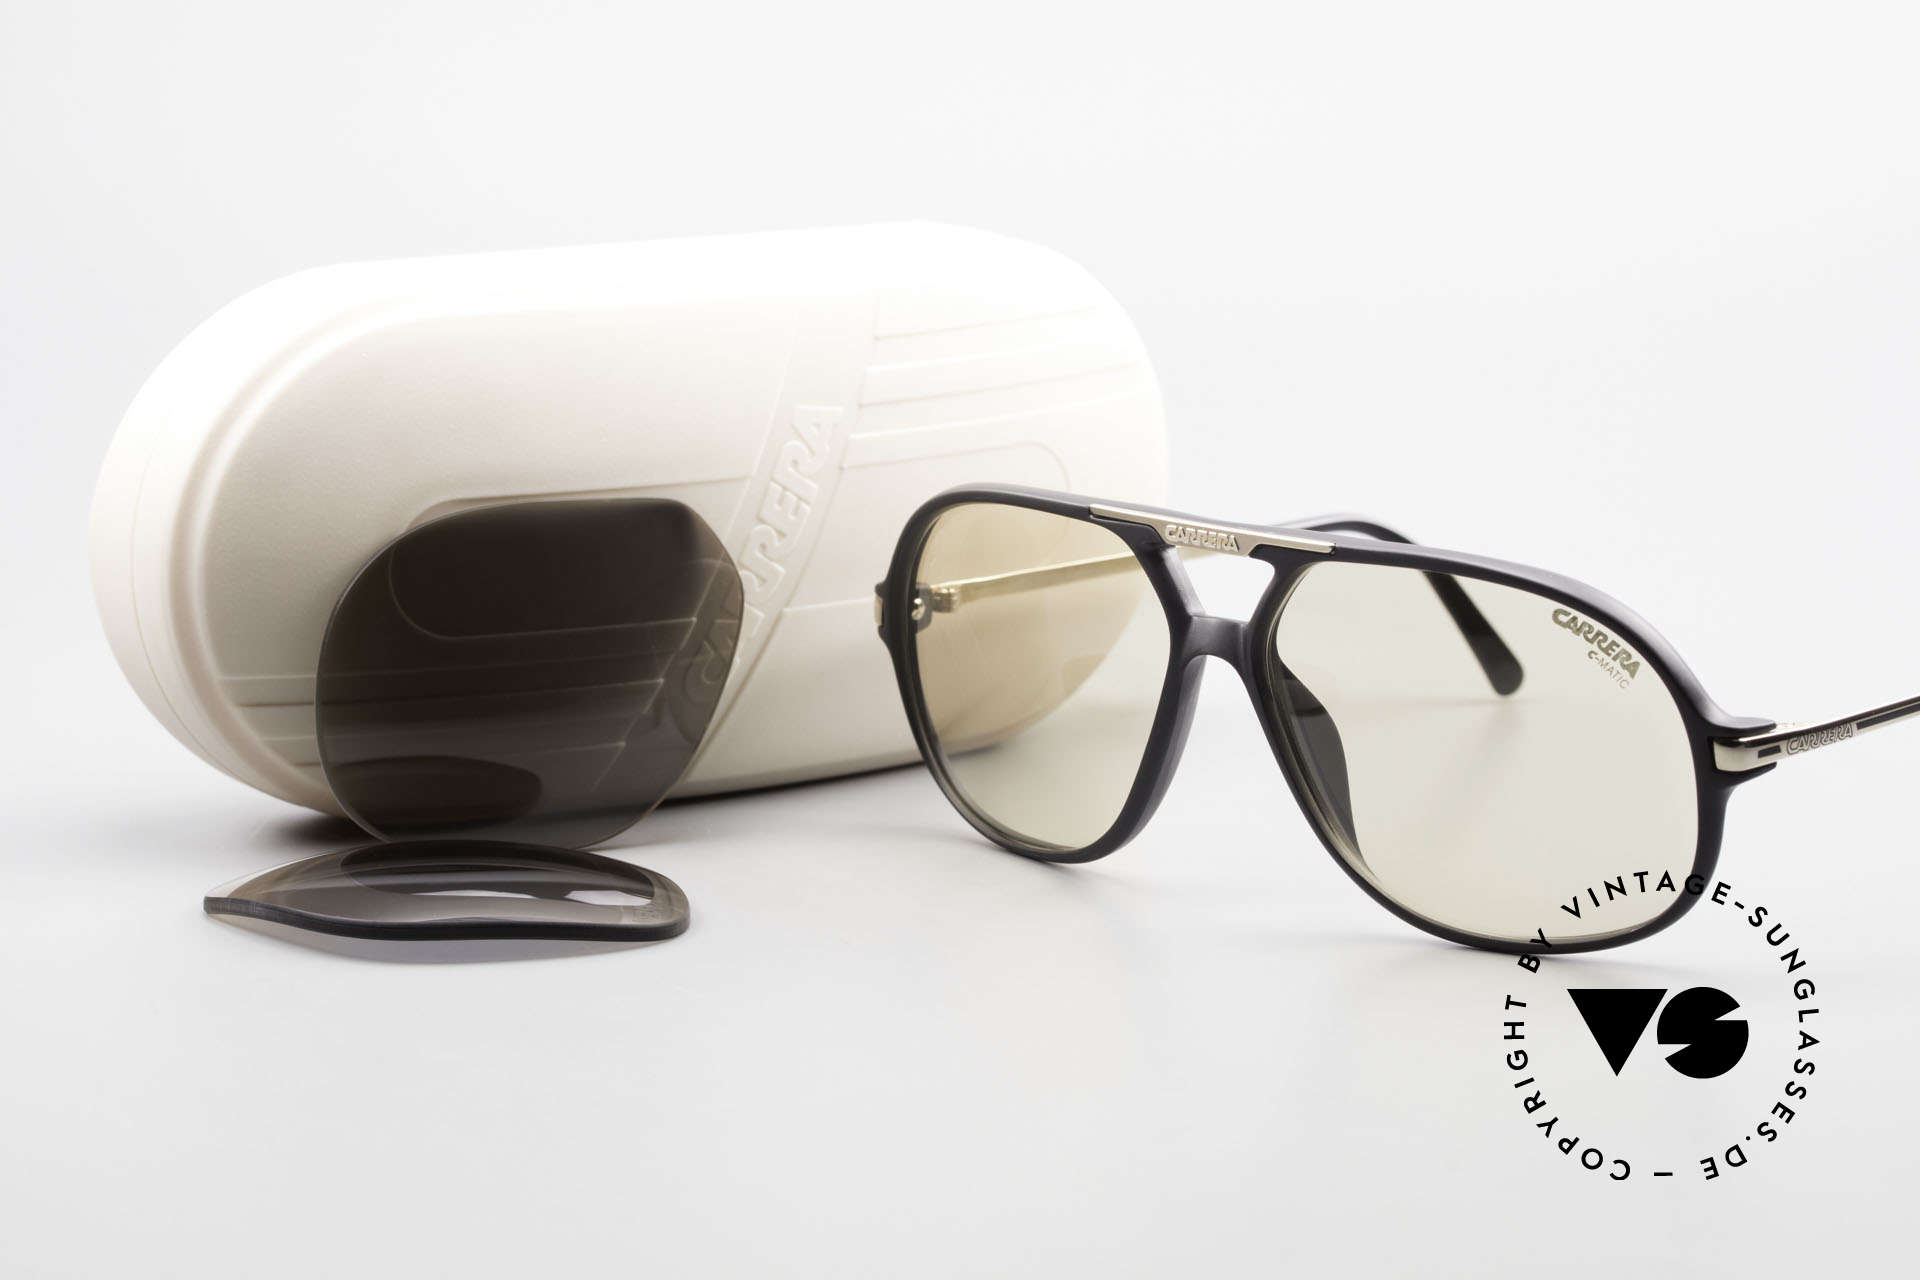 Carrera 5411 C-Matic With Extra Polarized Lenses, NO RETRO sunglasses, but a 30 years old ORIGINAL!, Made for Men